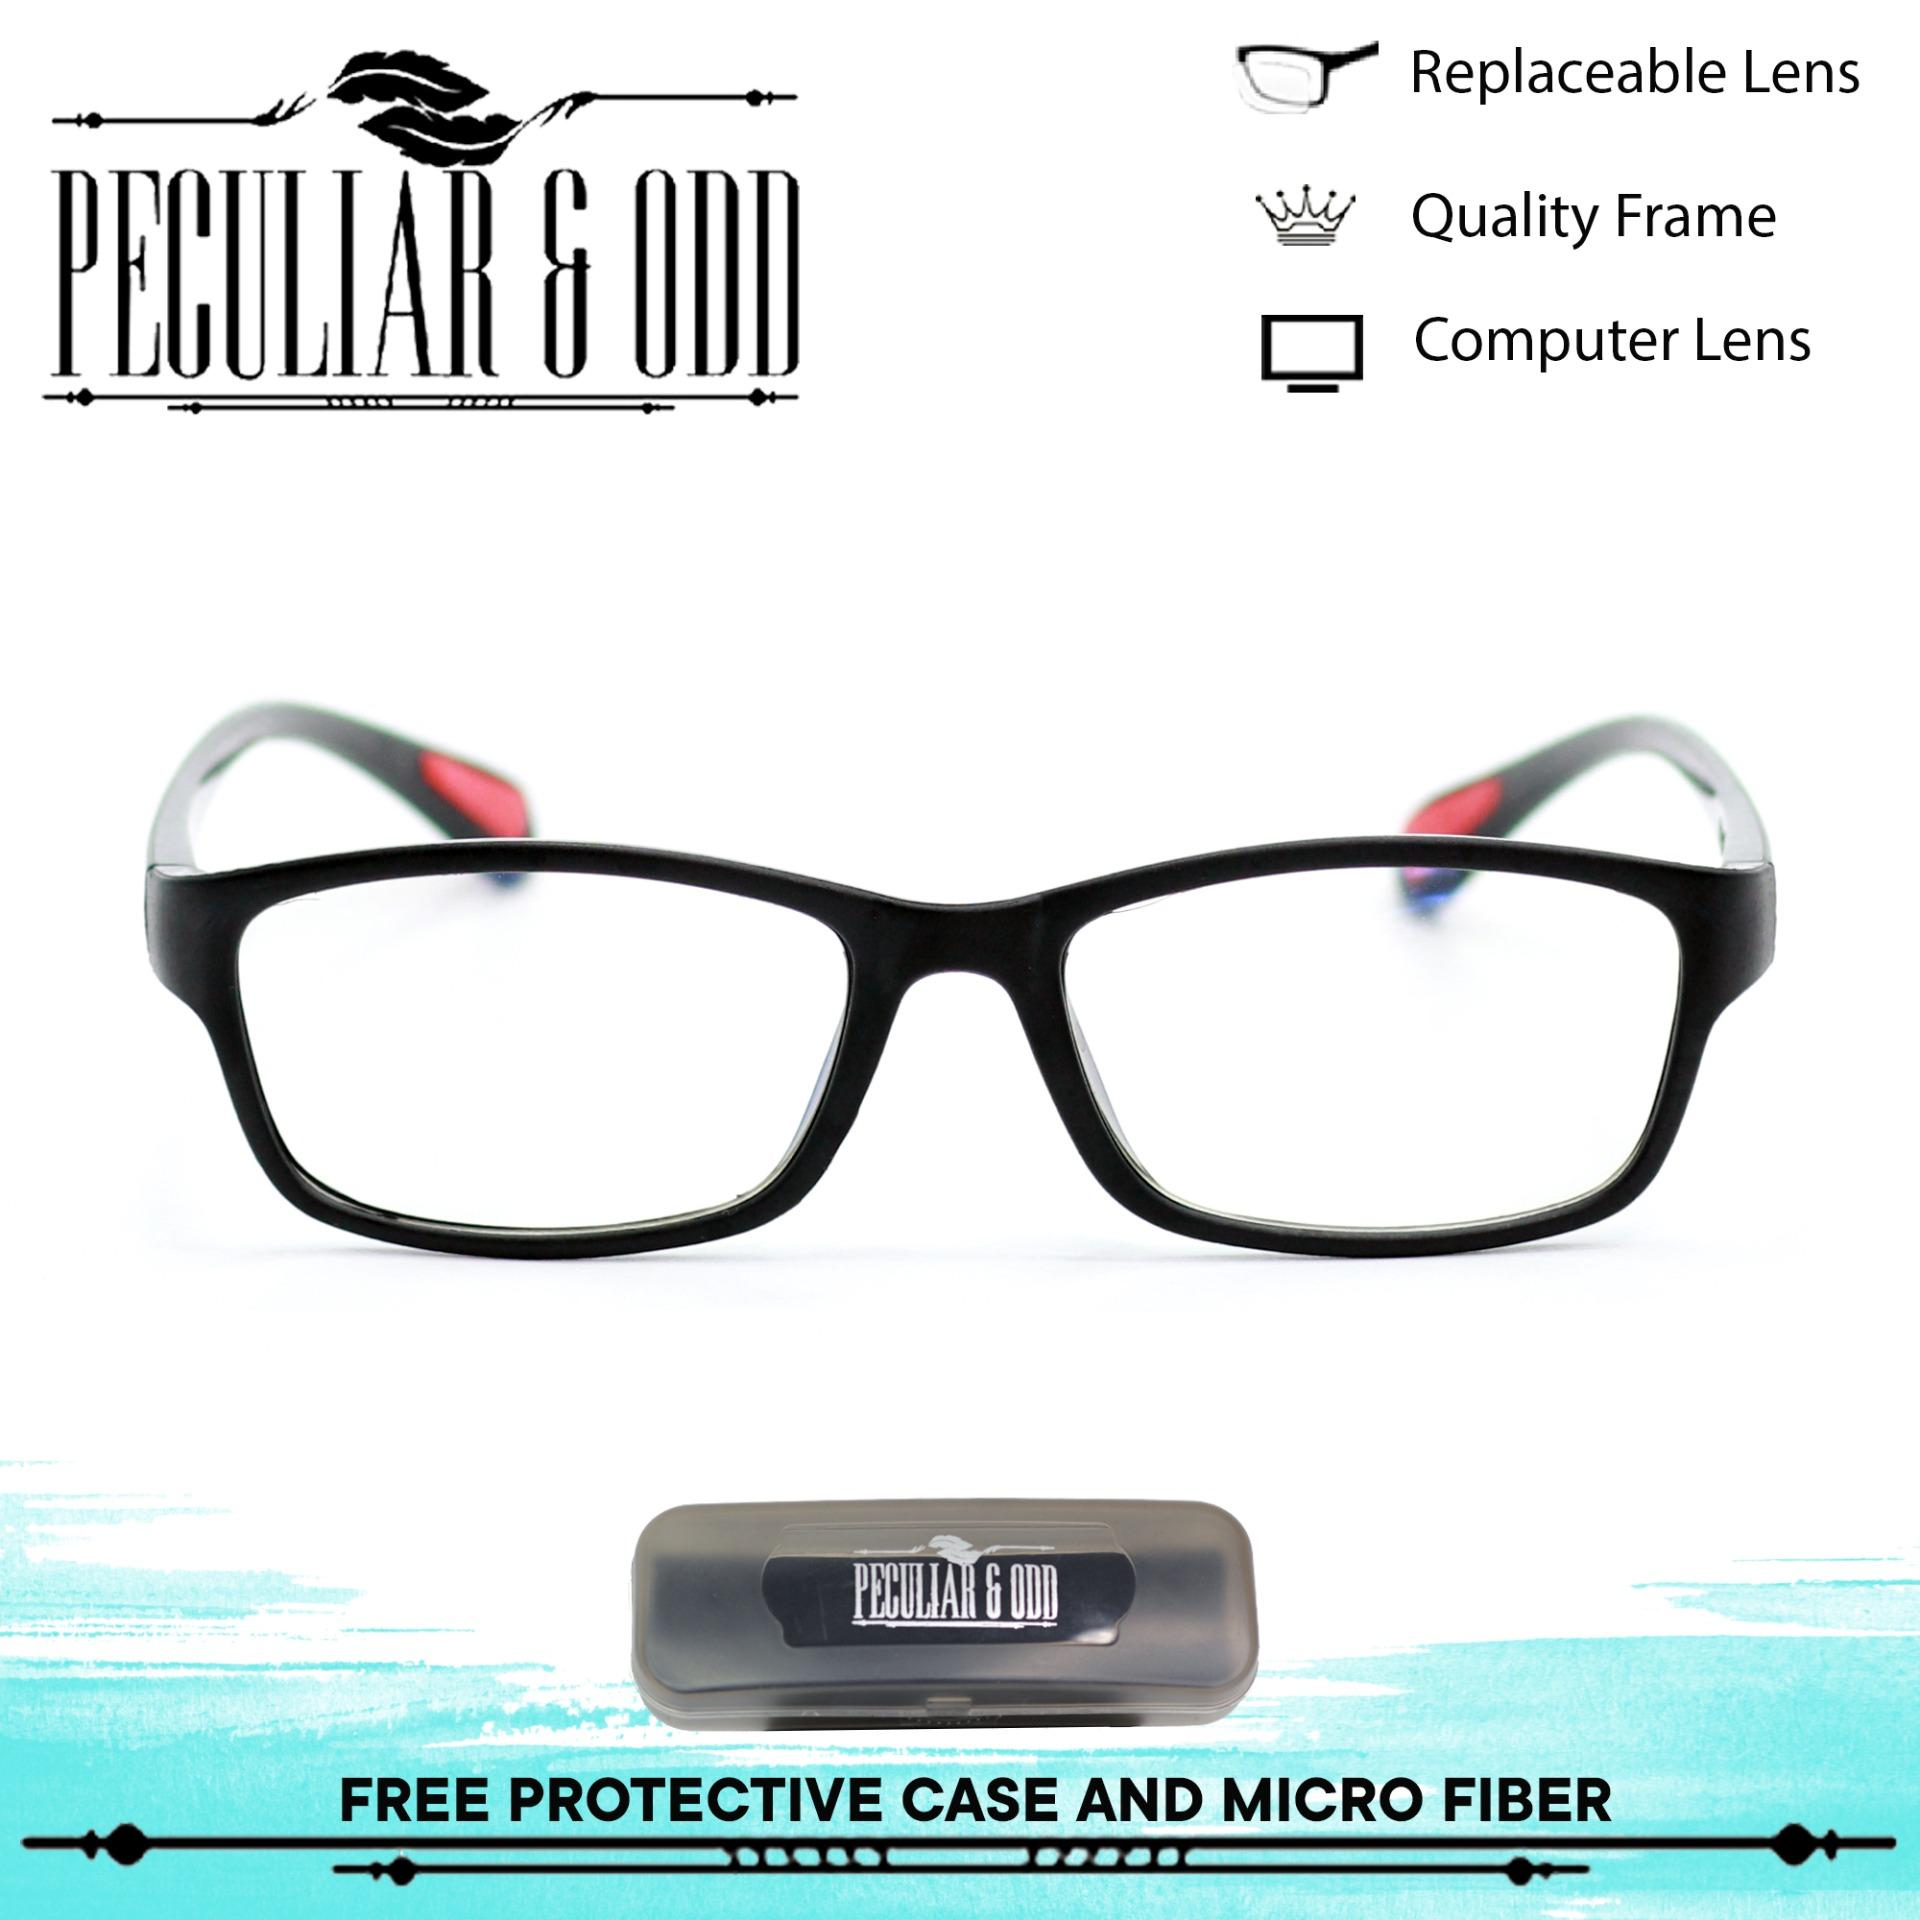 3dc560ecda Peculiar Premium 8818 Black Computer Anti-Radiation Replaceable Lens  Eyeglass  Unisex Eyewear Optical Frame Anti Blue Light Multicolored Lens -  Unisex ...